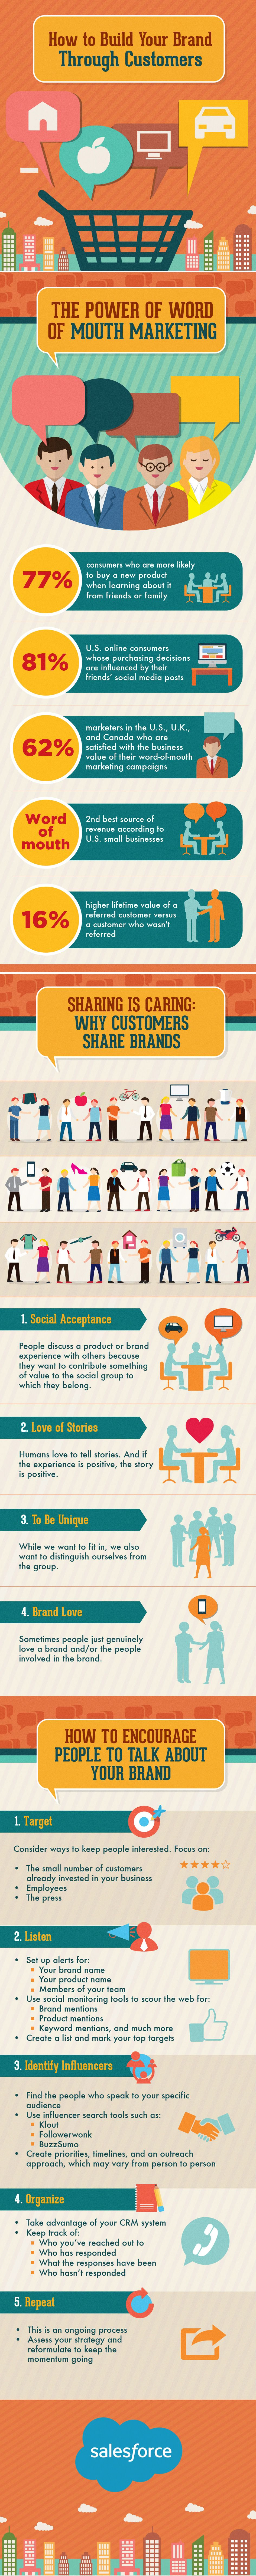 How to Build Your Brand Through Customers #infographic